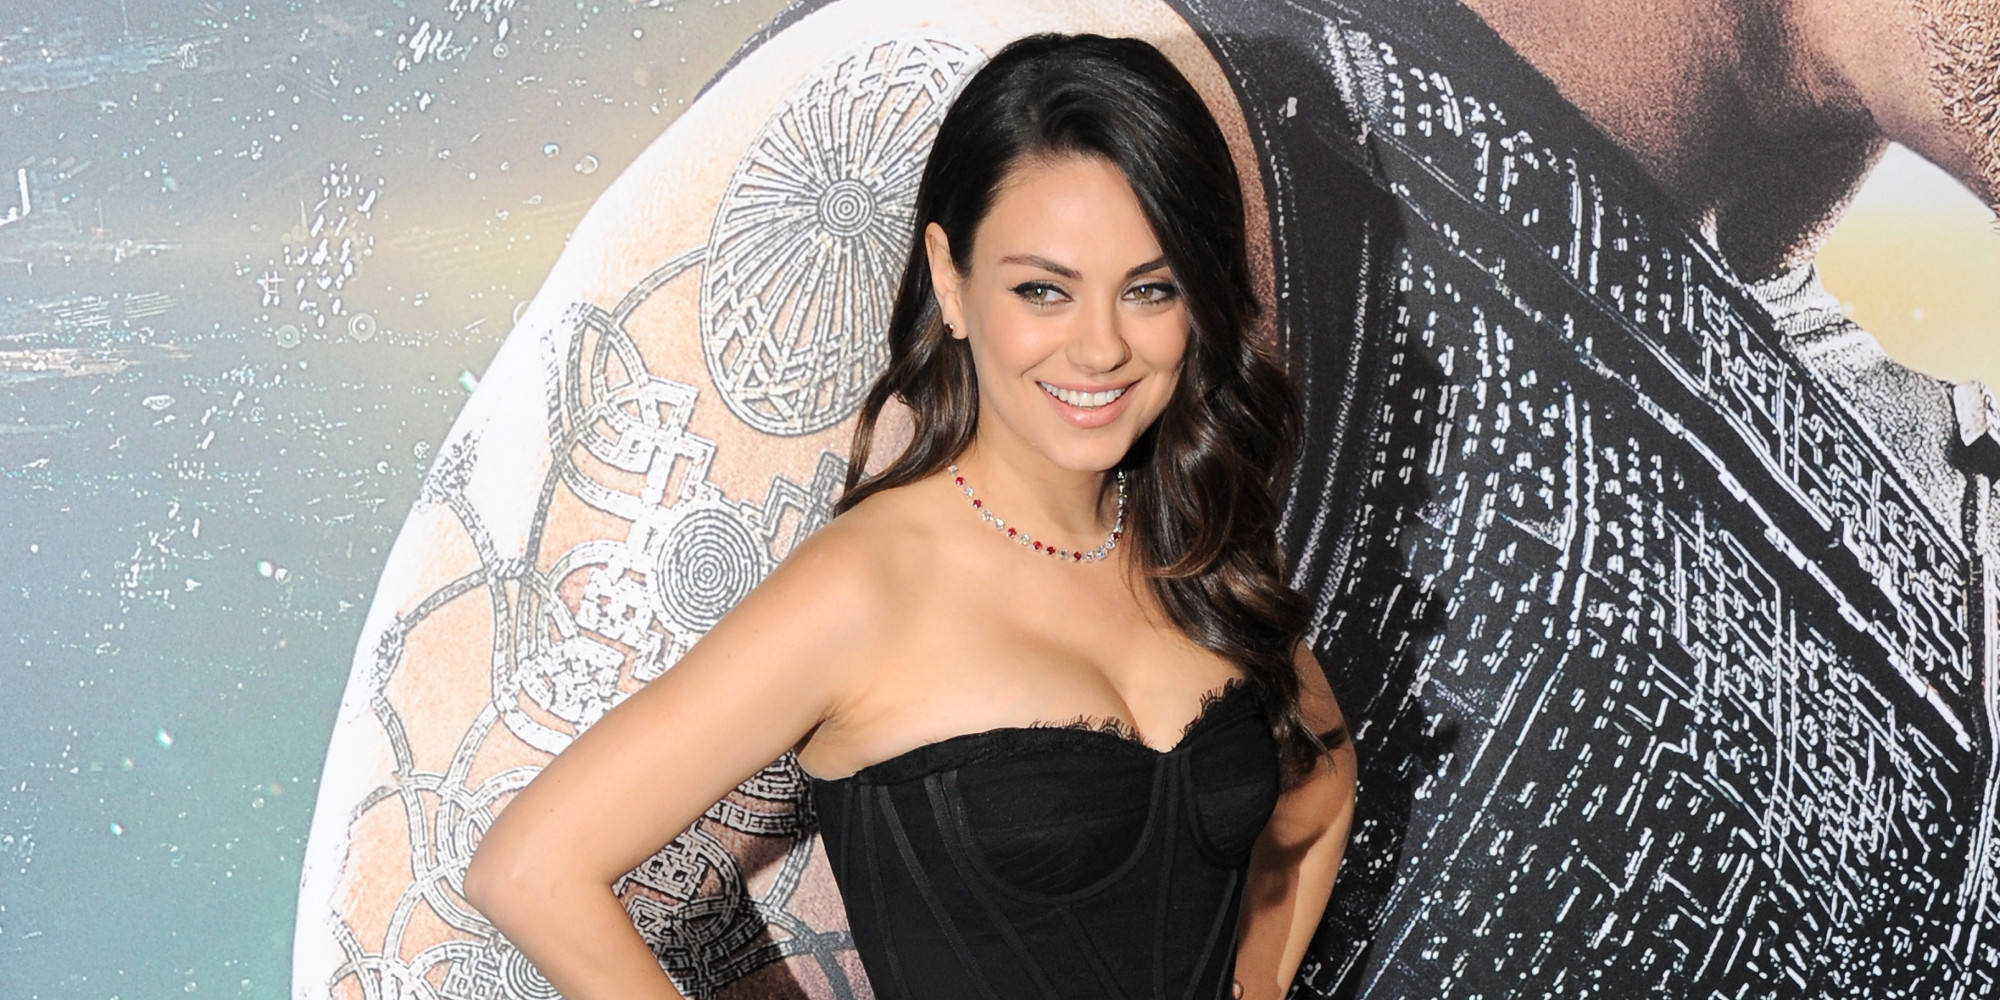 HOLLYWOOD, CA - FEBRUARY 02: Actress Mila Kunis arrives for the Premiere Of Warner Bros. Pictures'